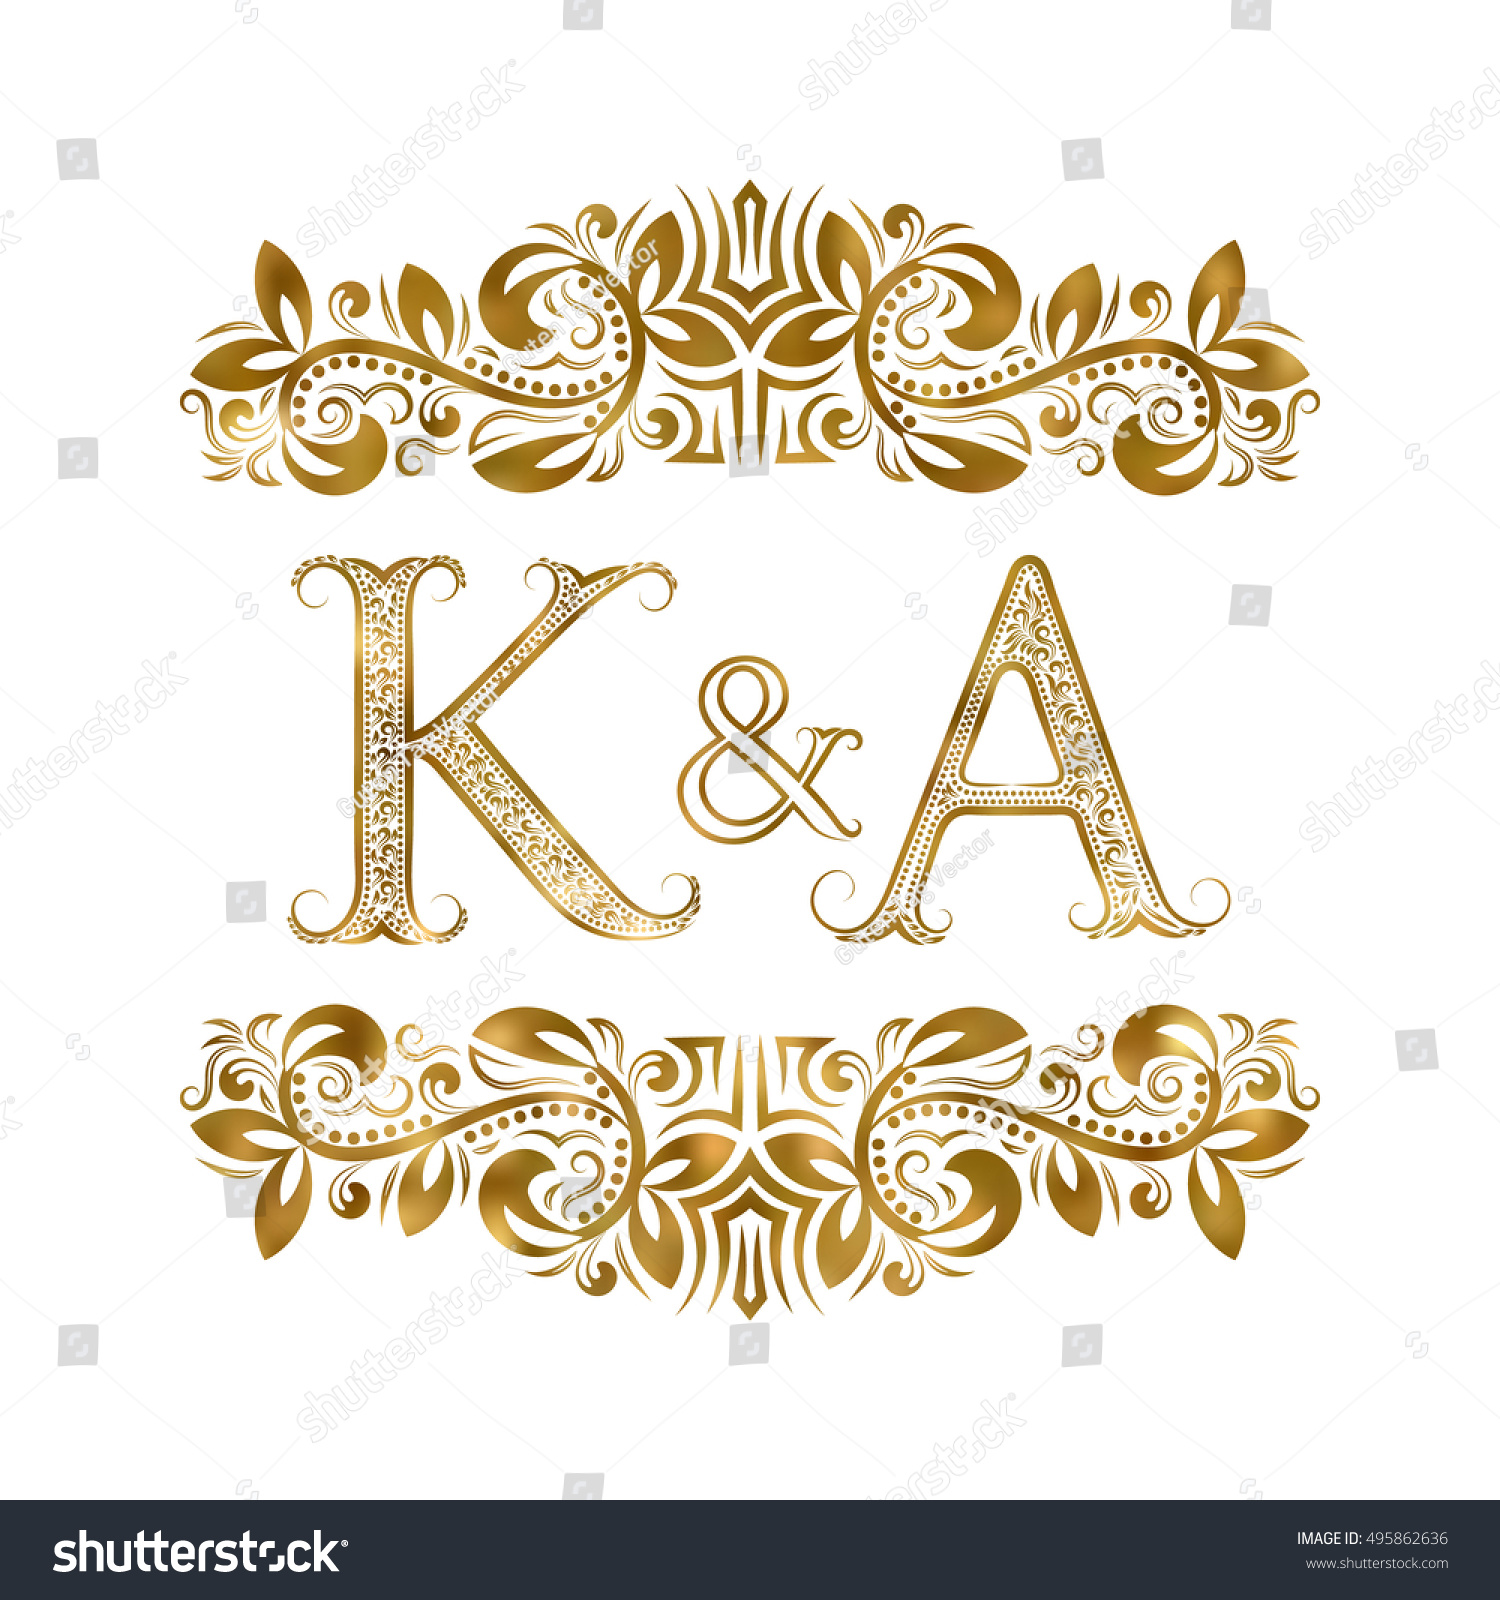 K And A Vintage Initials Logo Symbol. The Letters Are Surrounded By  Ornamental Elements.